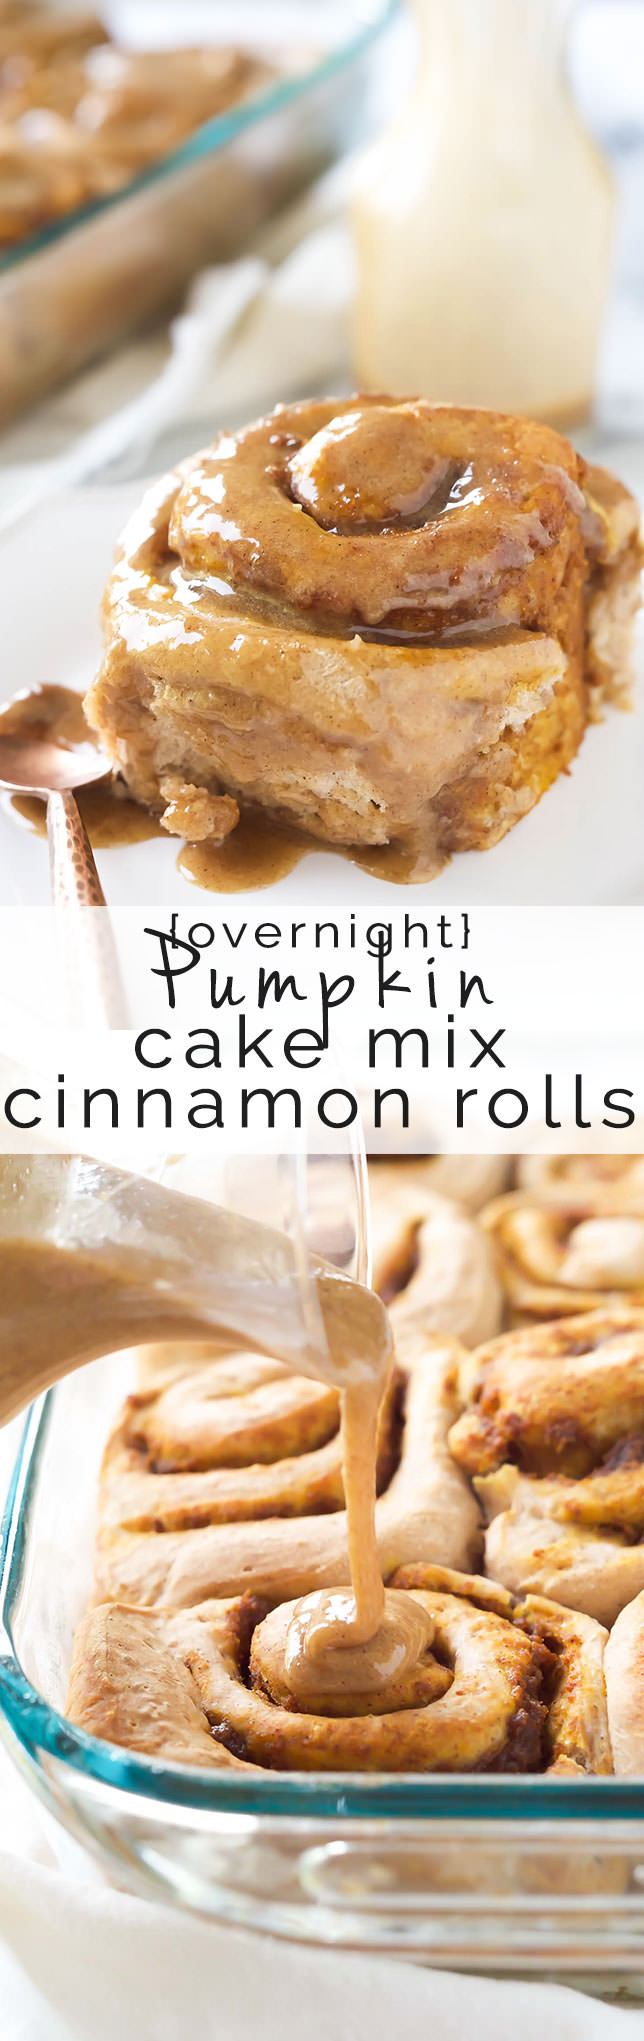 Pumpkin Cake Mix Cinnamon Rolls With Brown Sugar Maple Glaze